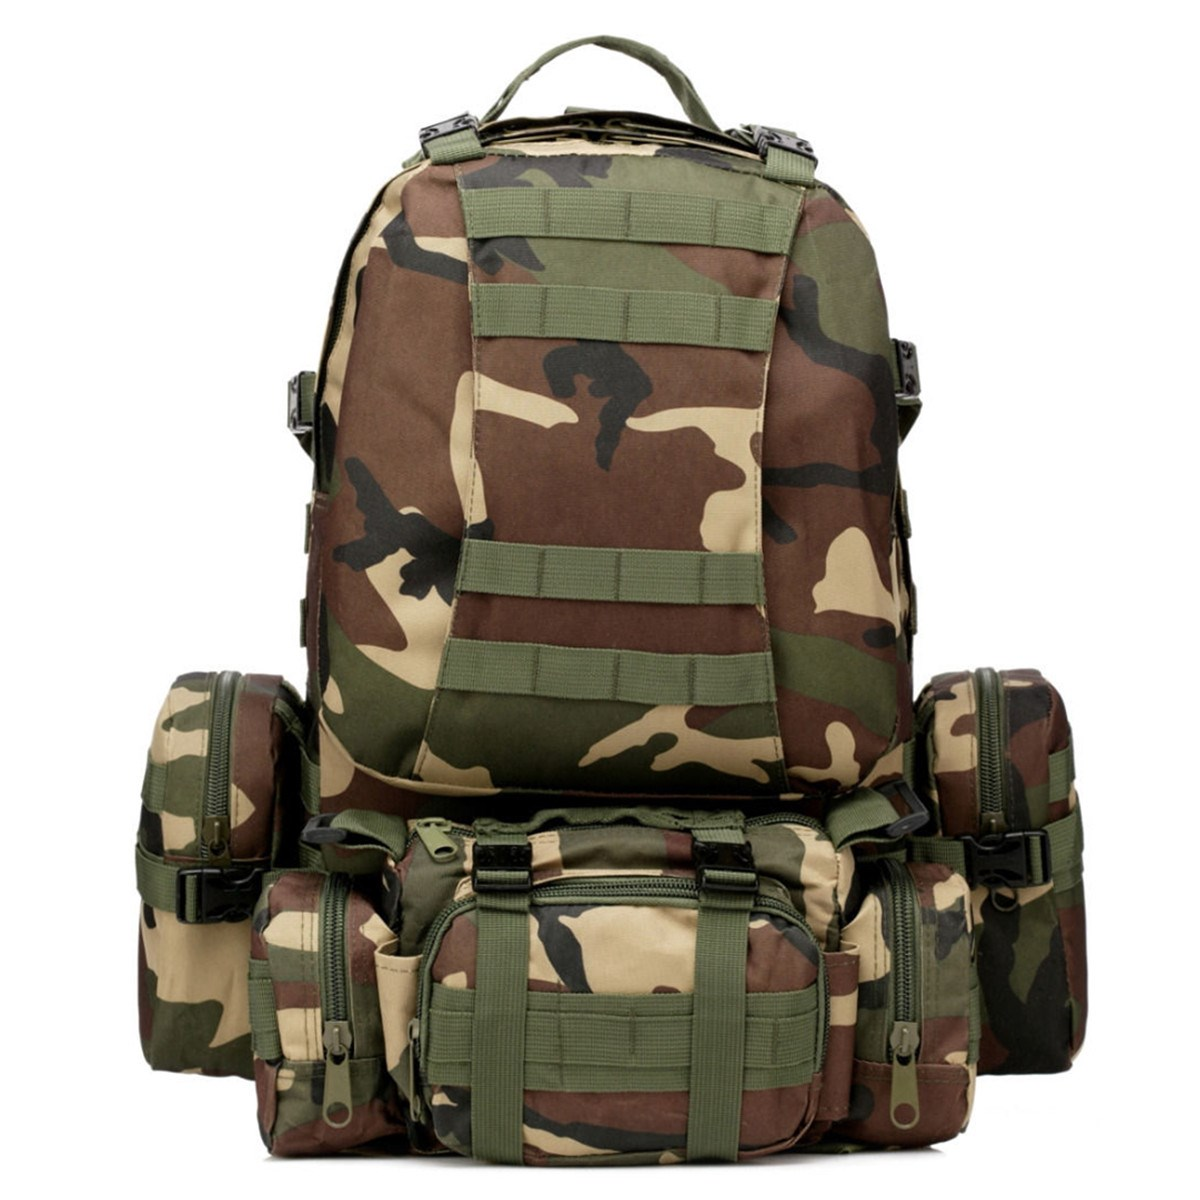 55L Outdoor Sport 3D Molle 600D Military nylon wearproof Tactical Backpack Camping hiking Rucksack mountaineering climbing Bag